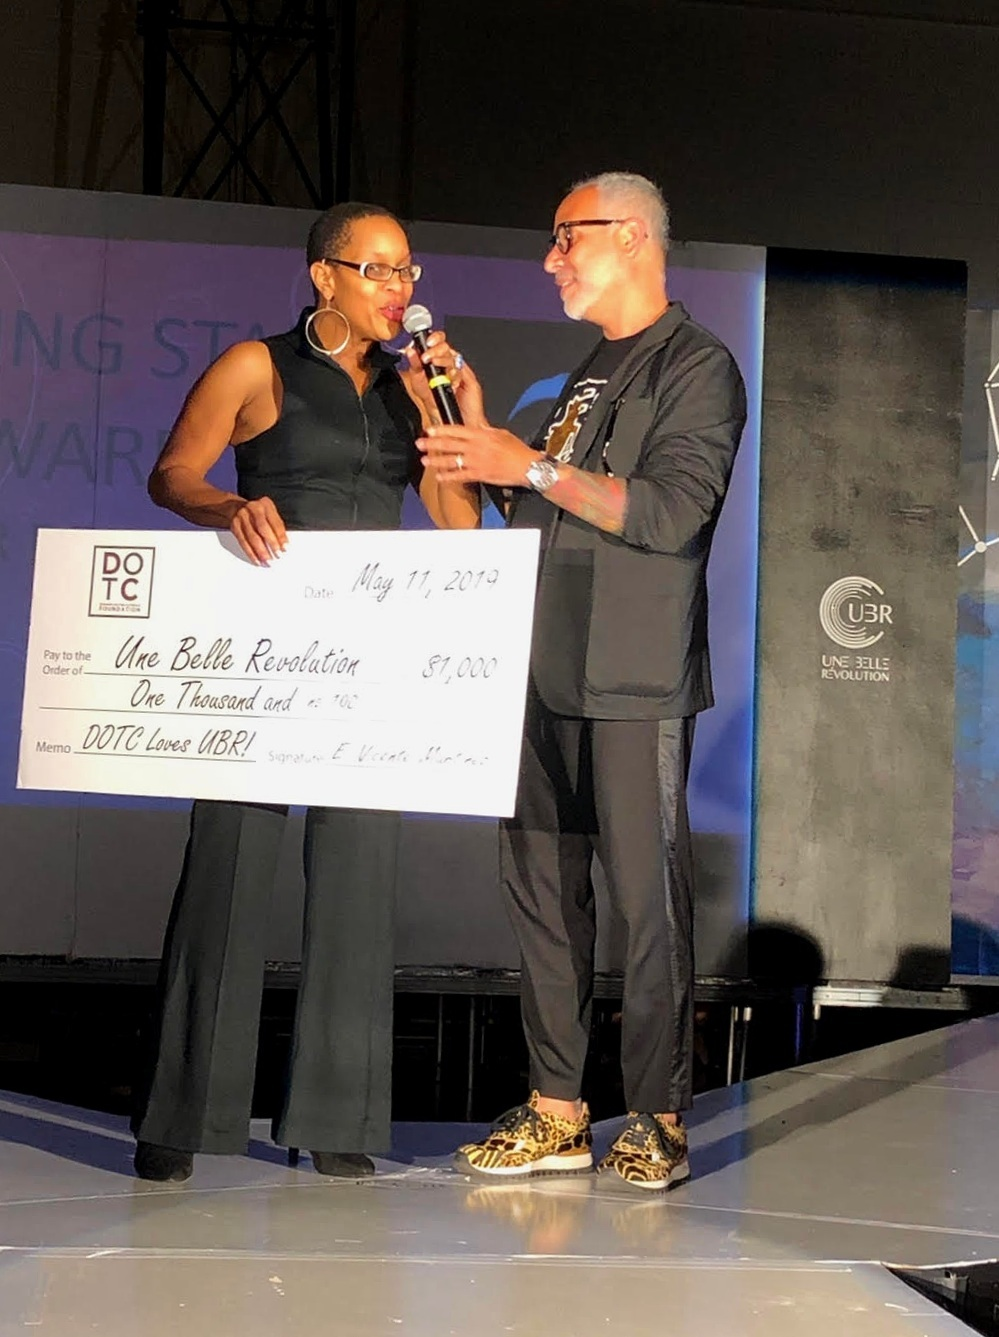 DOTC -  Doggies on the Catwalk  founder, E. Vincent Martinez presented Ms. Williams with a donation for her program. DOTC was created by Martinez in his Grady High School classroom 12 years ago and in alignment with the DOTC Foundation's mission of supporting arts programs and fashion schools, the SEAM Grant has been created. Une Belle Revolution is its first recipient.  SEAM - Supporting Education in Apparel Mastery .